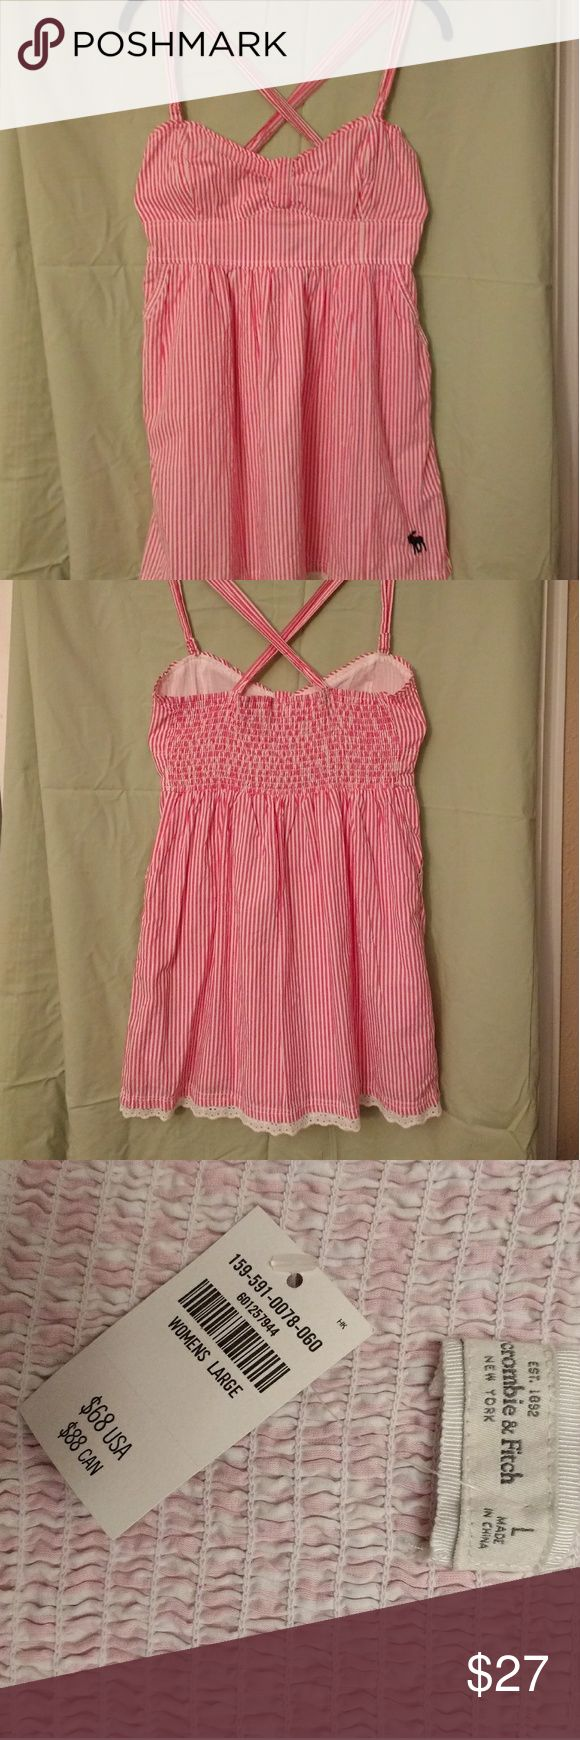 Pink and white dress Pink and white Abercrombie and Fitch dress brand new!! Has cute little moose at bottom hem in navy blue. Also has pockets! Very adorable. Abercrombie & Fitch Dresses Mini